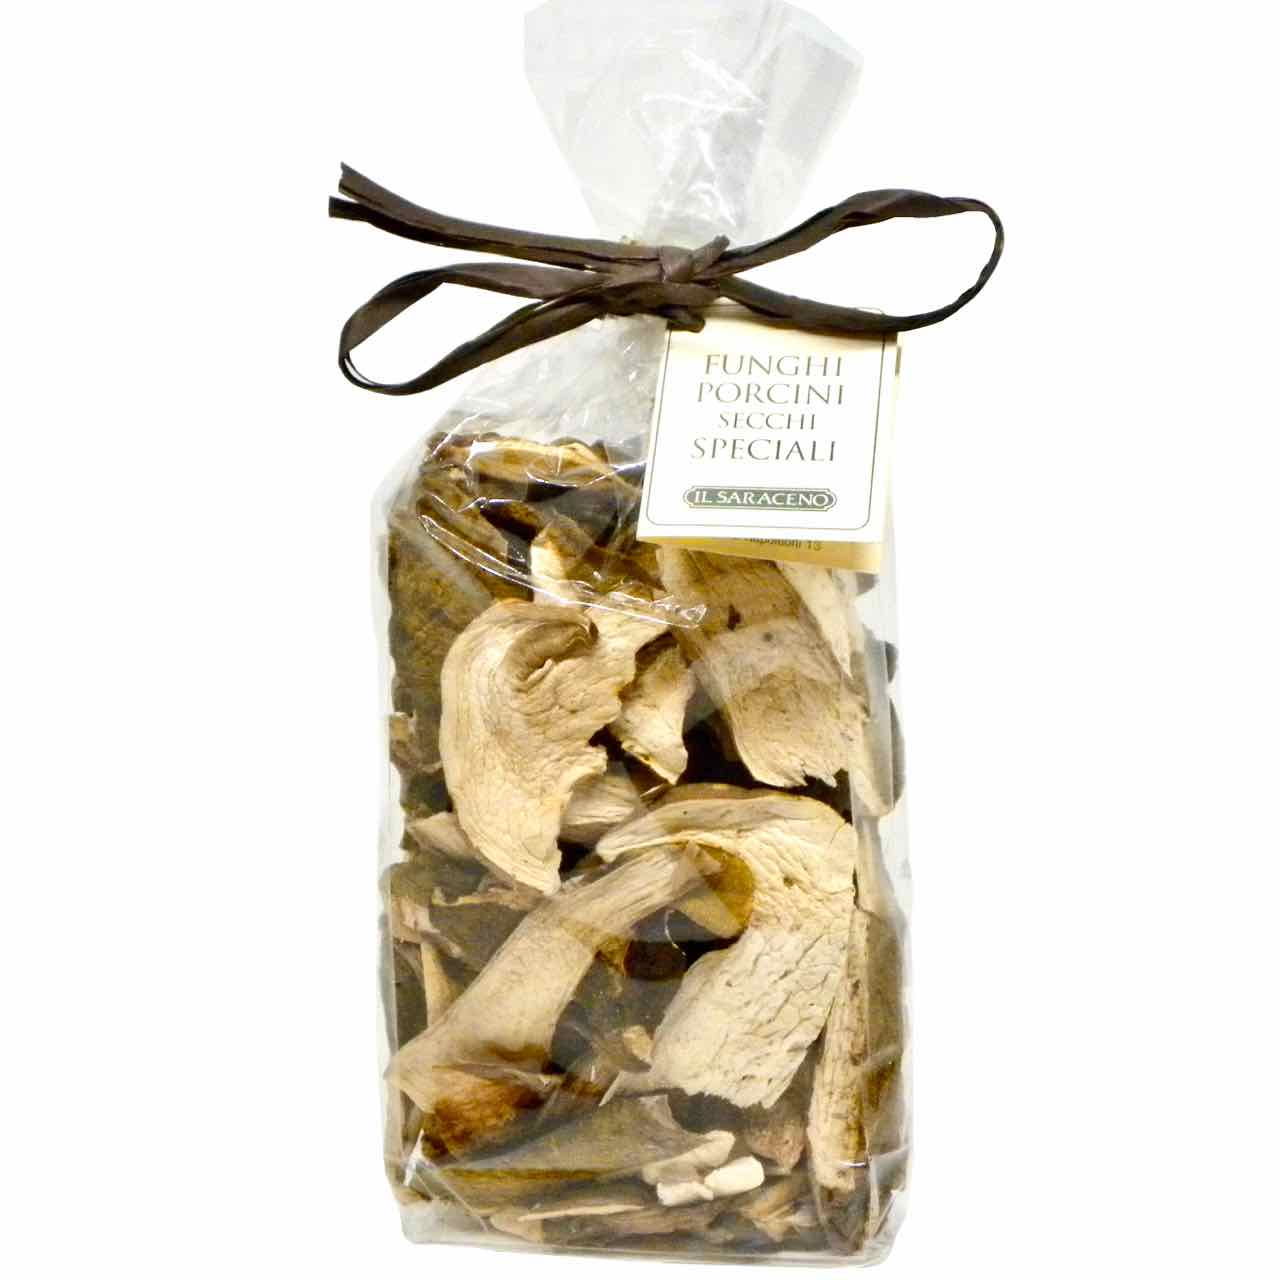 dried porcini mushrooms – best Italian food – Gustorotondo online food shop – authentic Italian artisan food